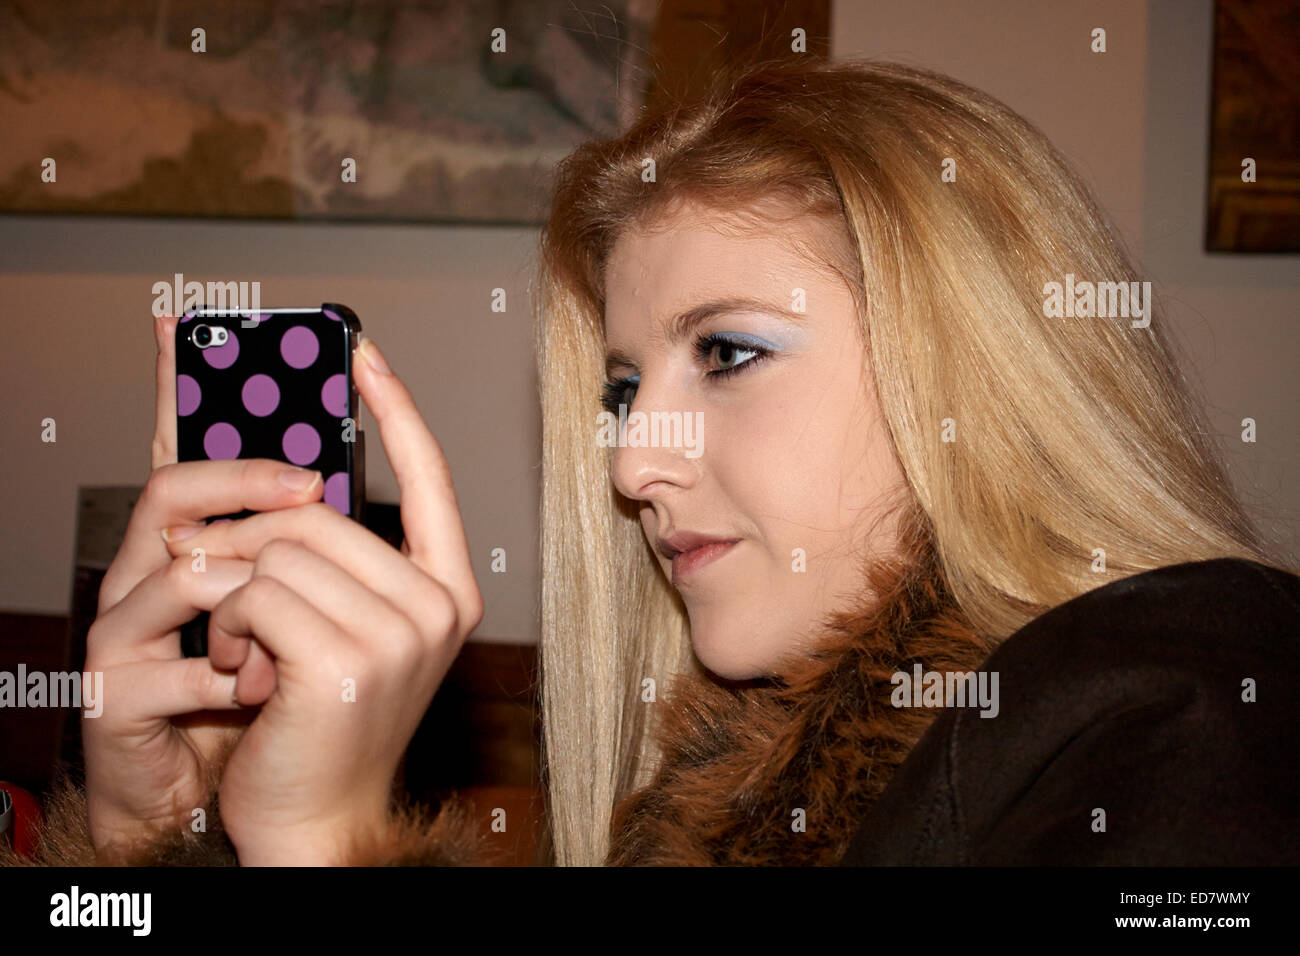 teenage girl taking photos with her cellphone - Stock Image